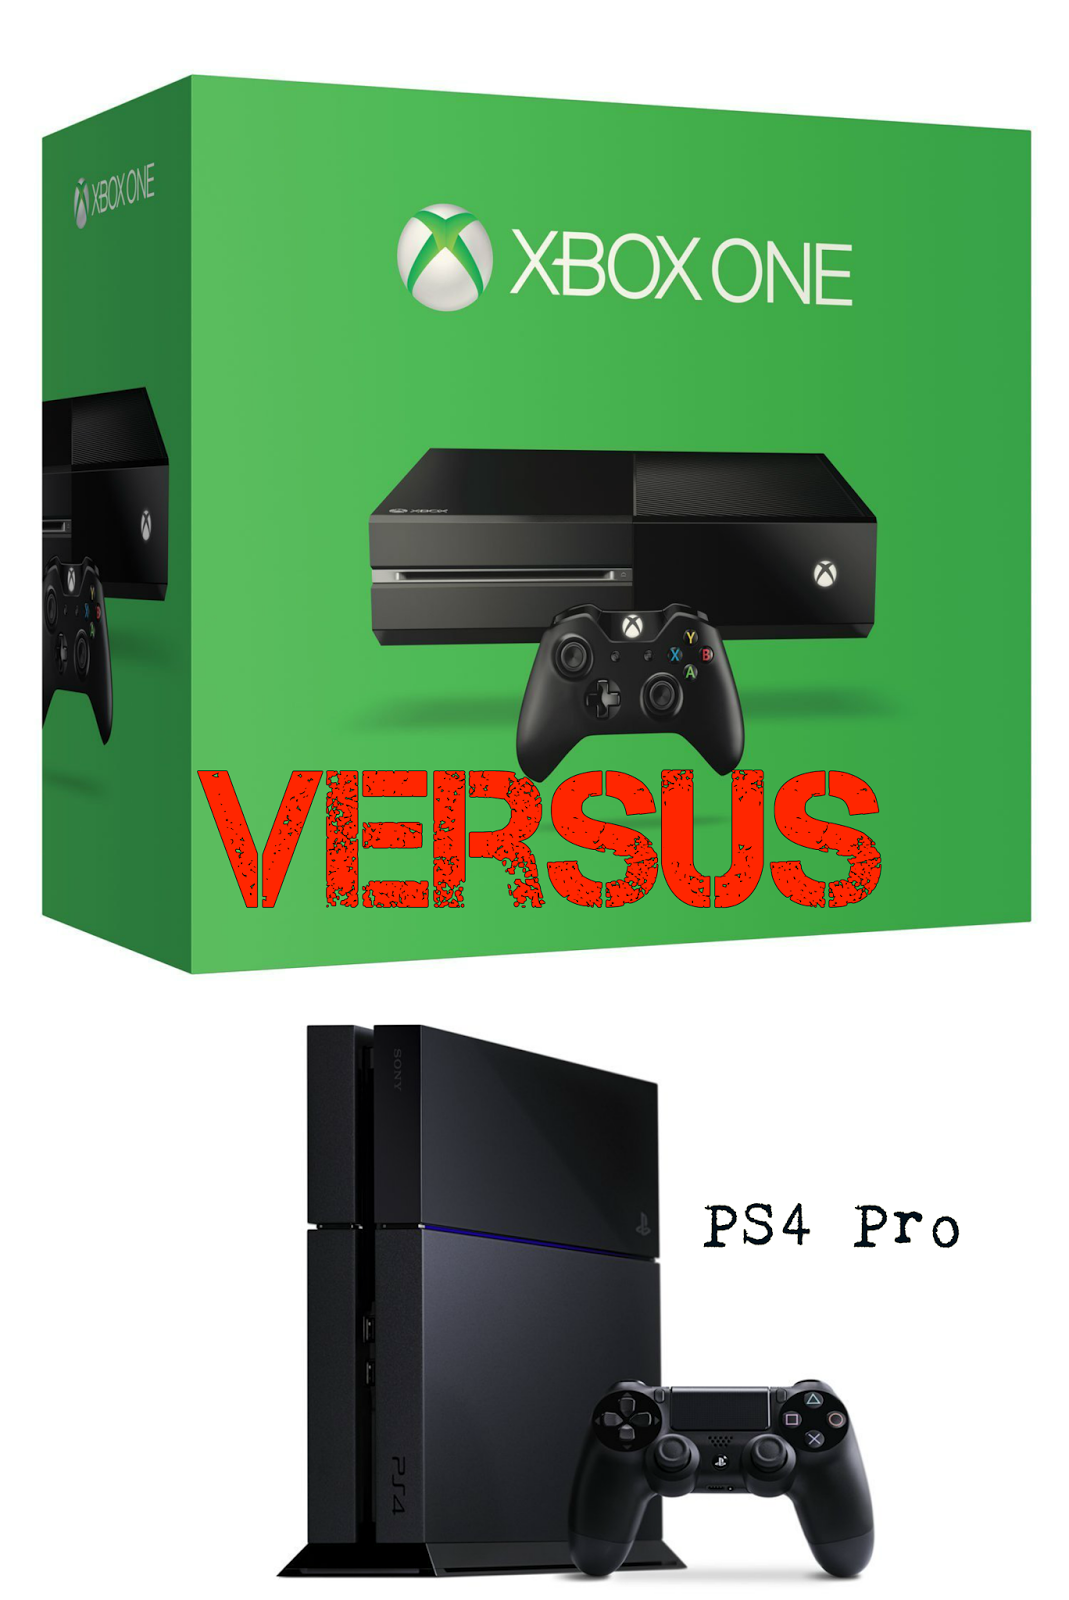 Xbox One Vs Ps4 : Ps vs xbox one which is the better option